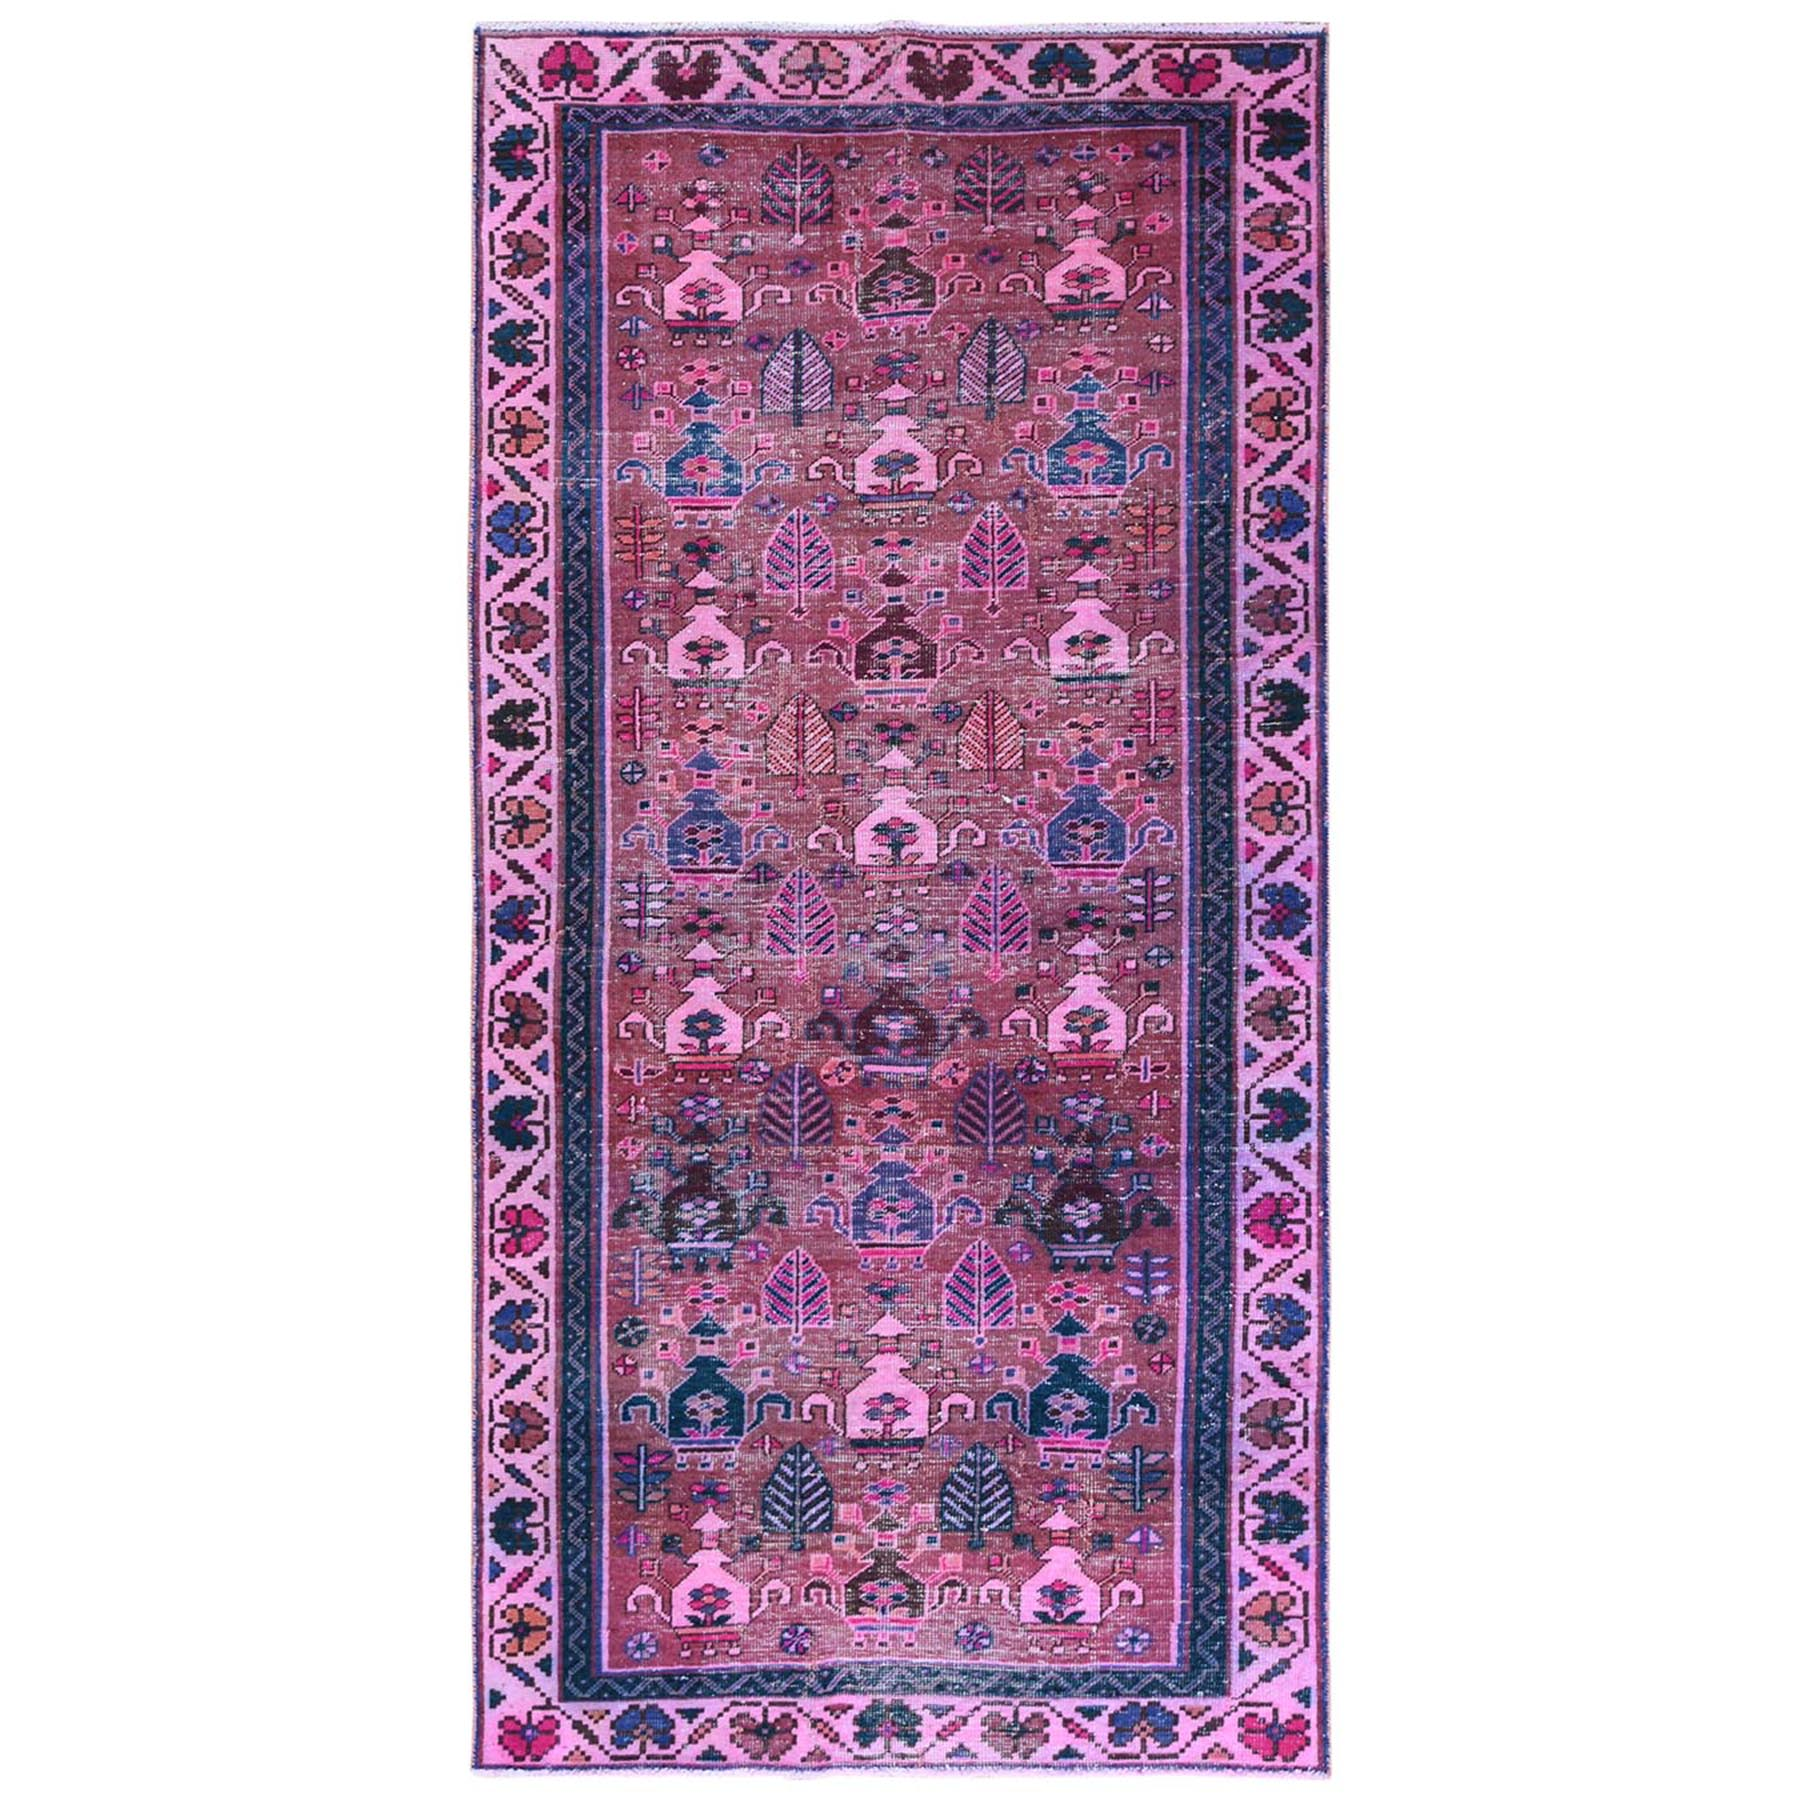 Fetneh Collection And Vintage Overdyed Collection Hand Knotted Pink Rug No: 1122178